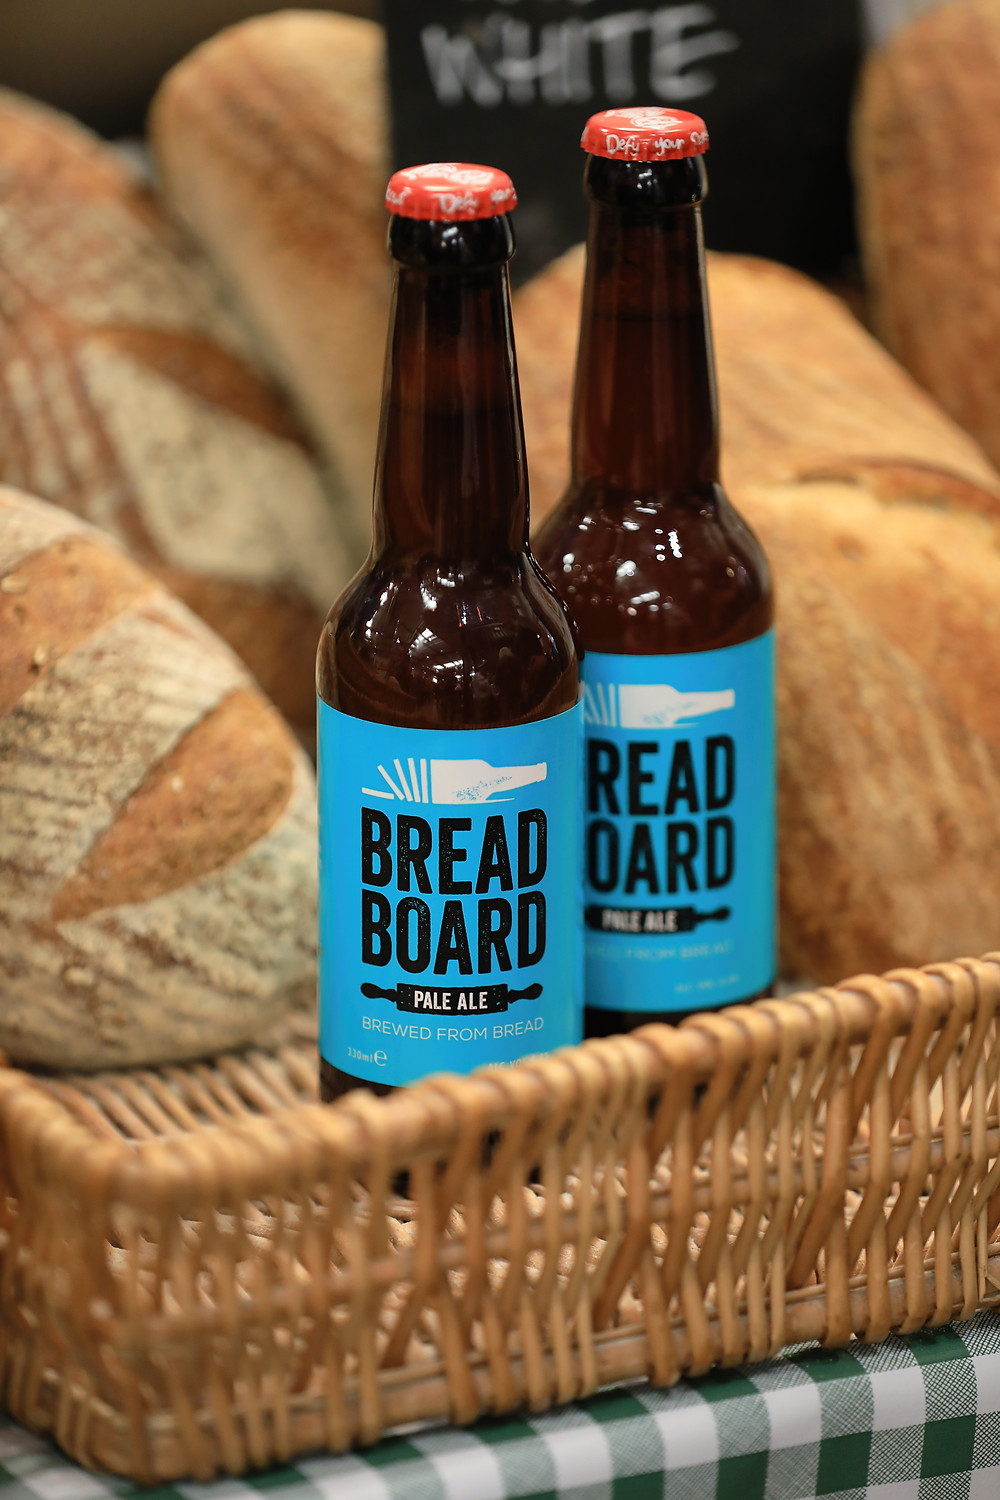 Craft beer bottle, bread, food waste